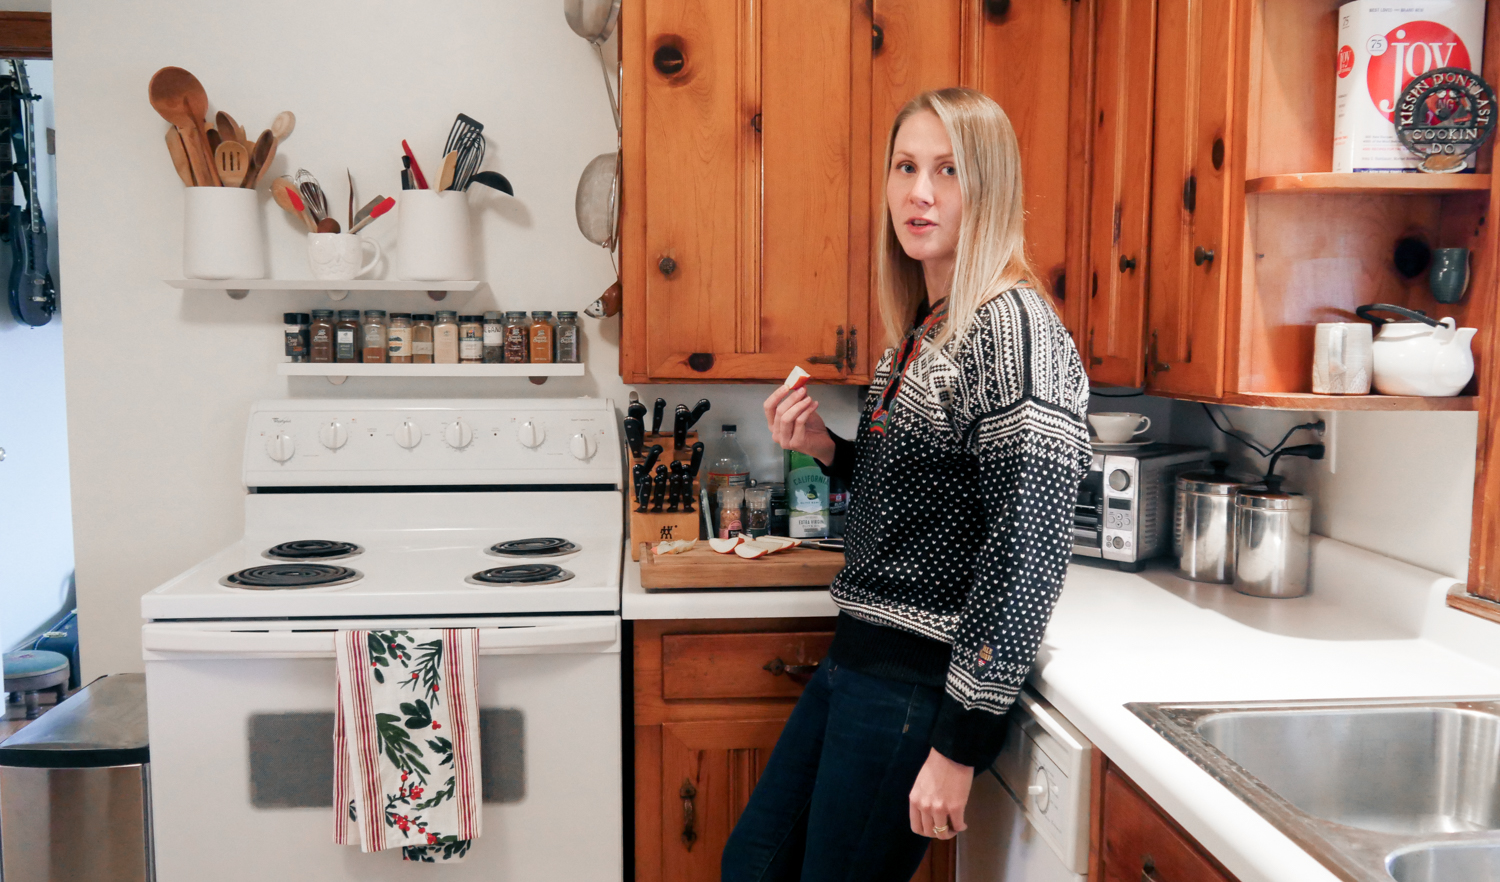 Nora Jane Struthers' Home-Style Fashion